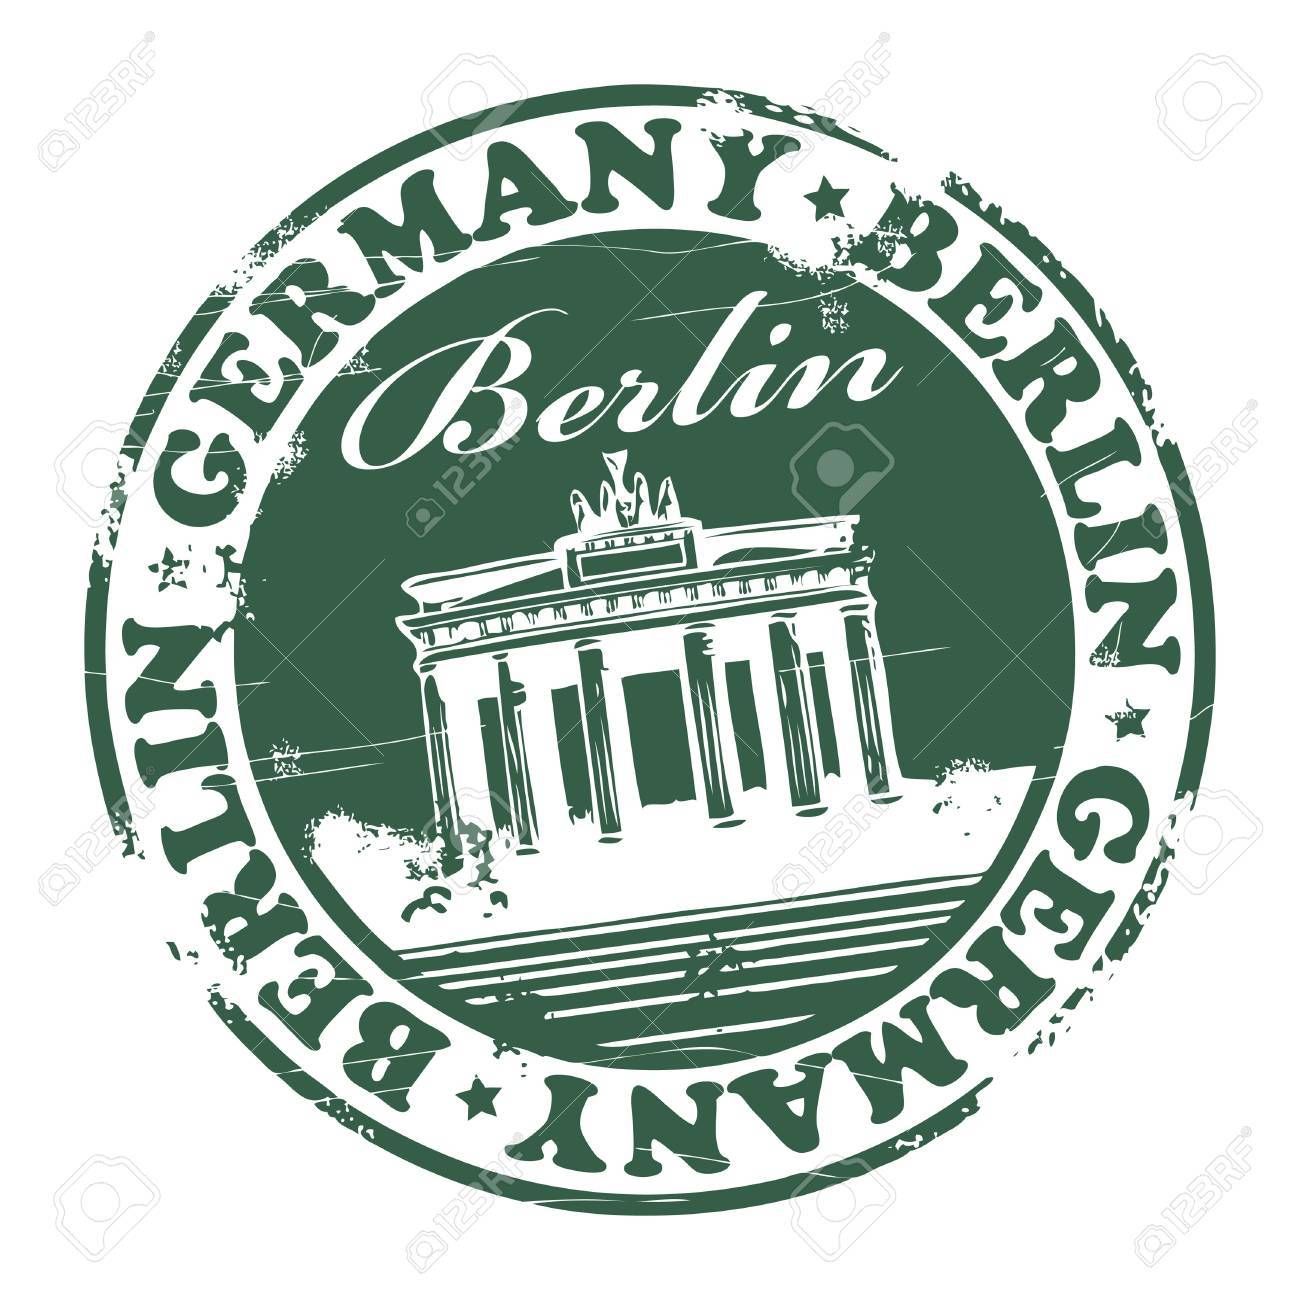 Grunge rubber stamp with the name of the capital of Germany, Berlin - written inside the stamp Stock Vector - 13710339